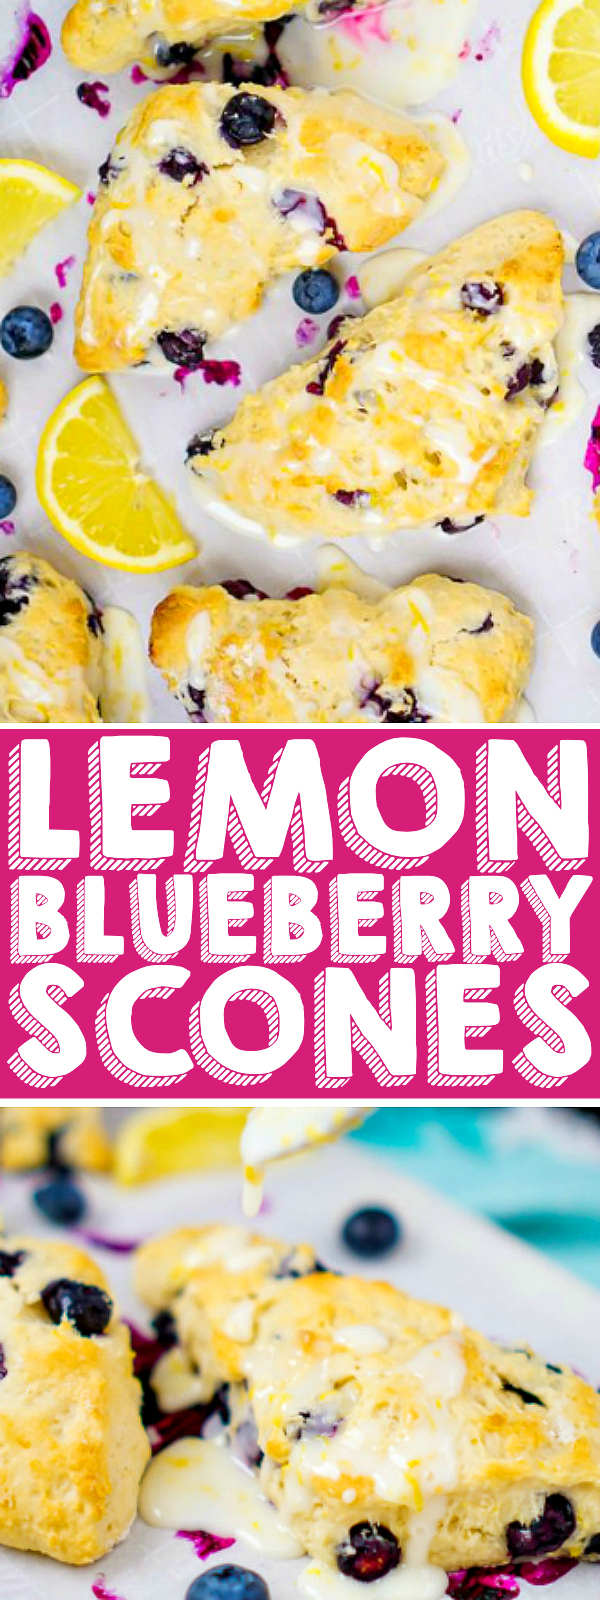 Glazed Lemon Blueberry Scones Recipe: This is the BEST SCONE RECIPE you will ever make! Sweet and tangy, this delicious citrus scone is full of flavor in every bite. The perfect breakfast pastry all year long! | The Love Nerds #christmasrecipe #easterrecipe #mothersdayrecipe